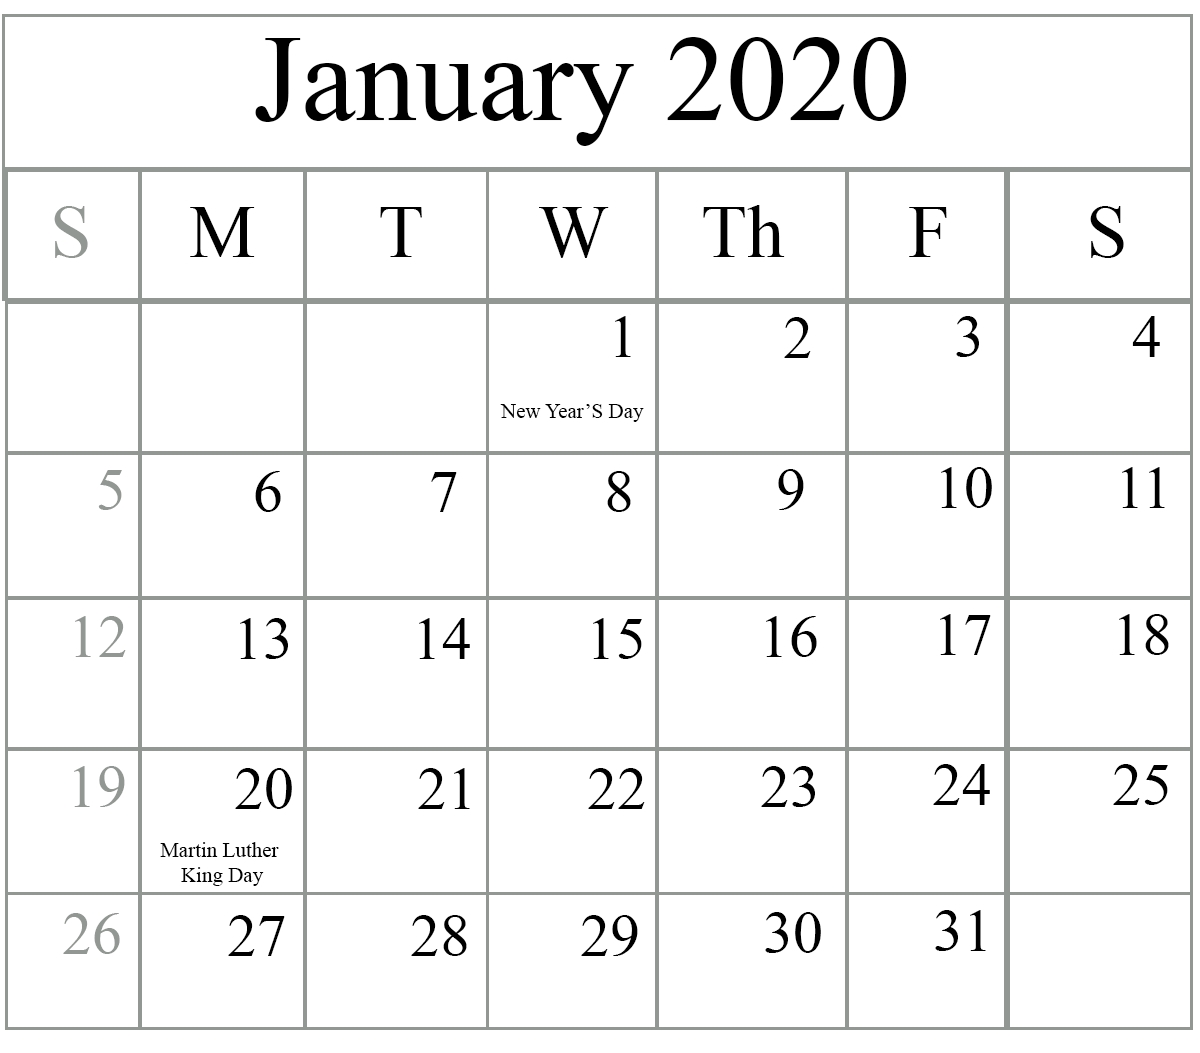 Free January 2020 Printable Calendar In Pdf, Excel & Word_Blank Calendar December 2020 And January 2020